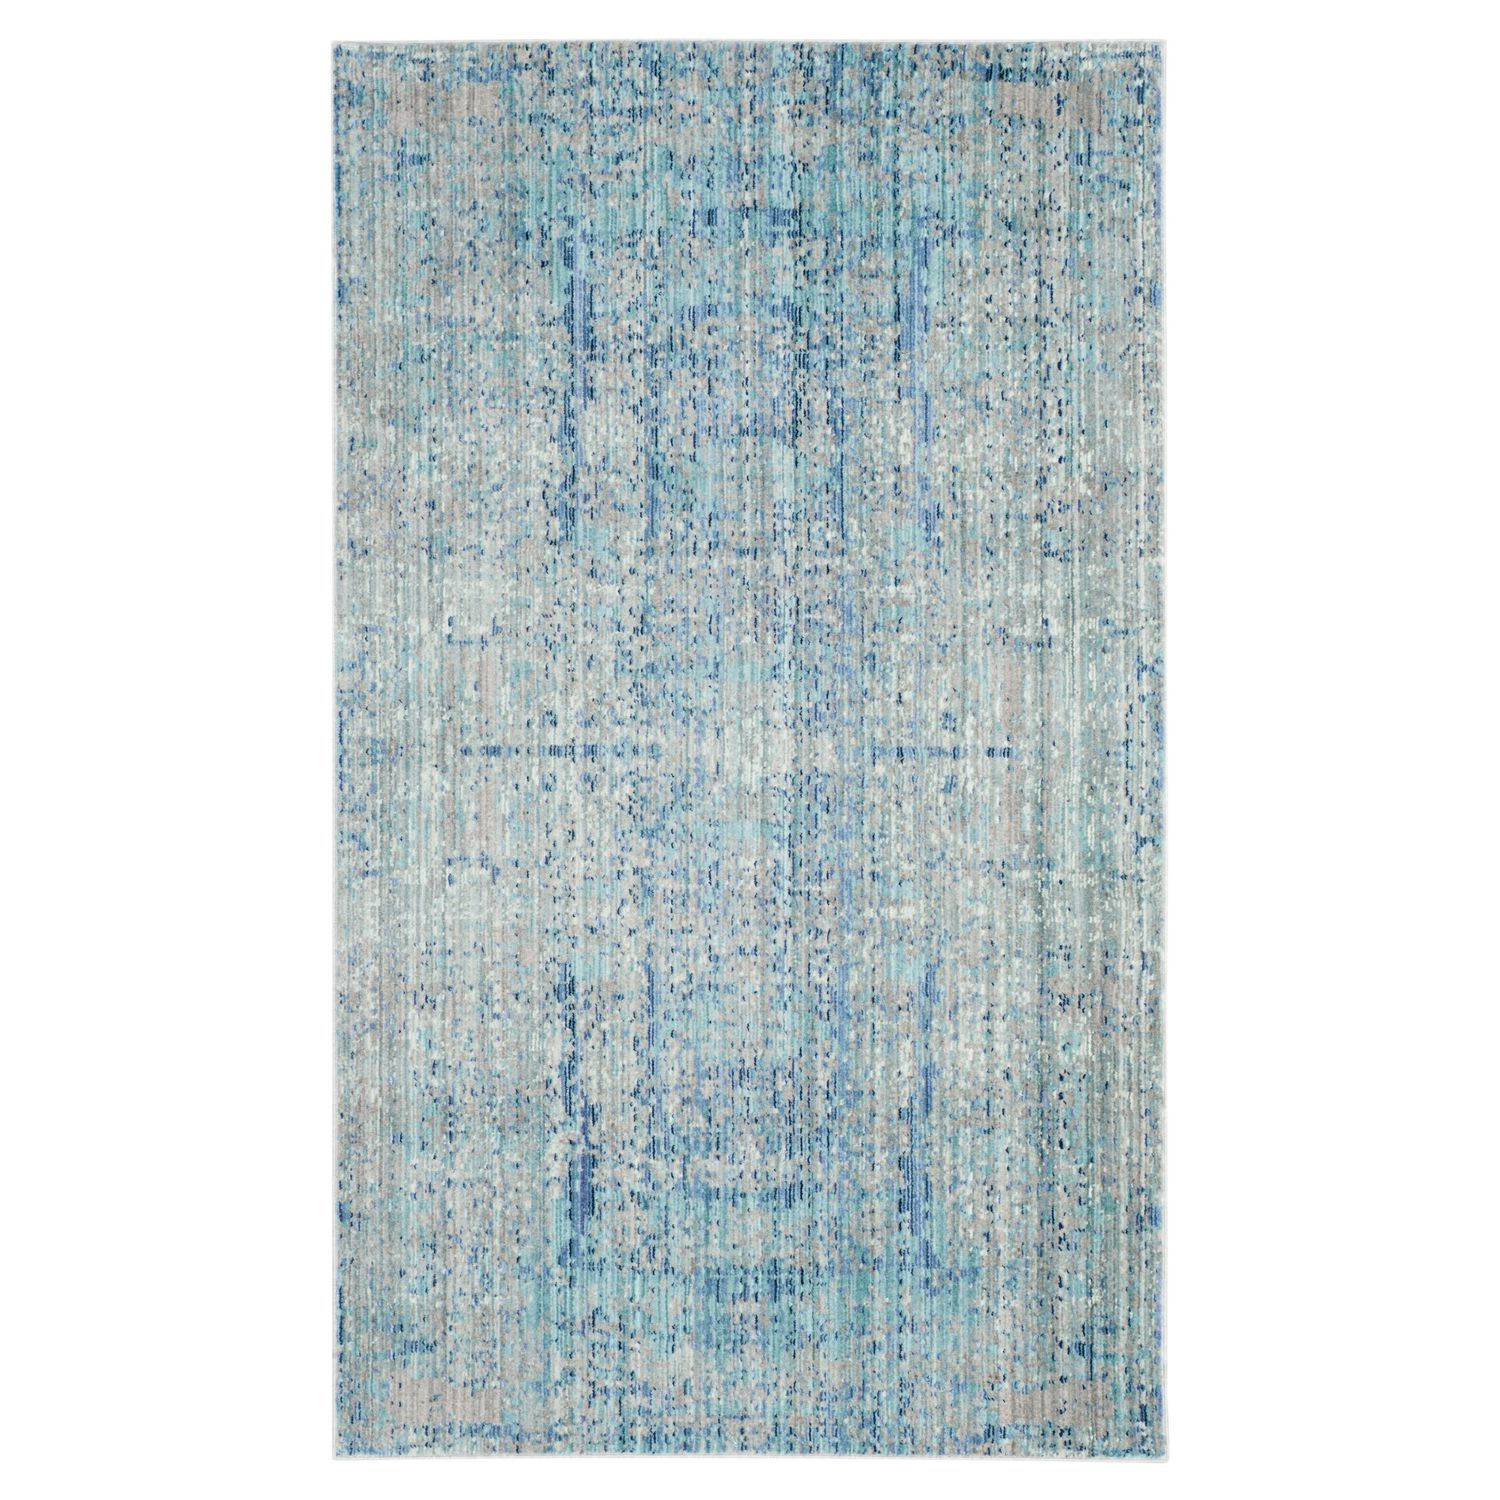 tapis abella vintage fibres synth tiques bleu clair bleu clair bleu gris 91 x 152 cm. Black Bedroom Furniture Sets. Home Design Ideas